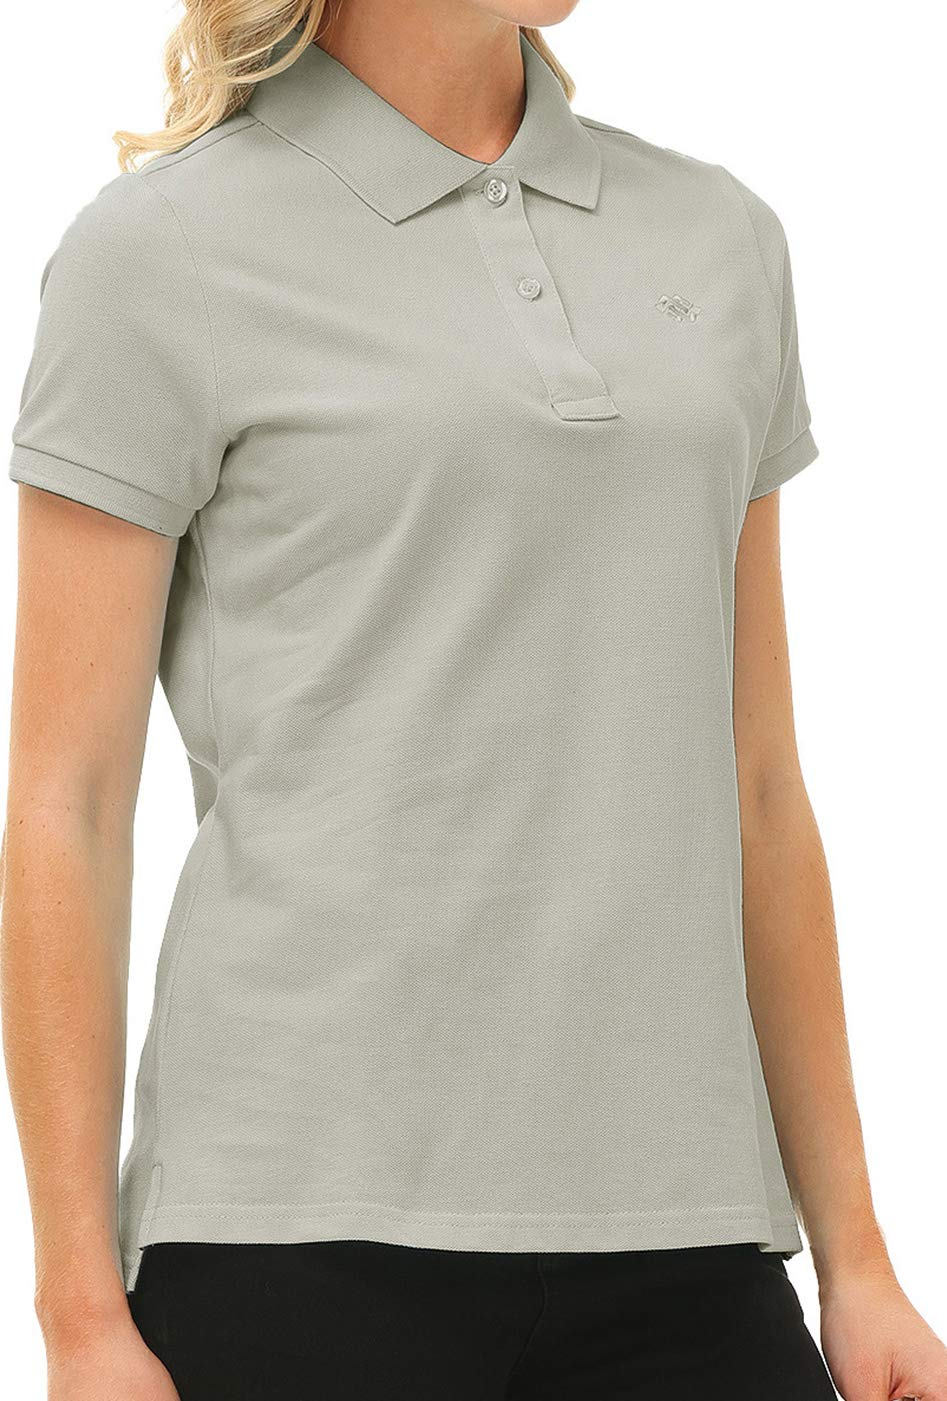 Golf Polo Shirts for Women Short Sleeve Athletic Shirts Dry Fit Lady Golf Tops for Tennis